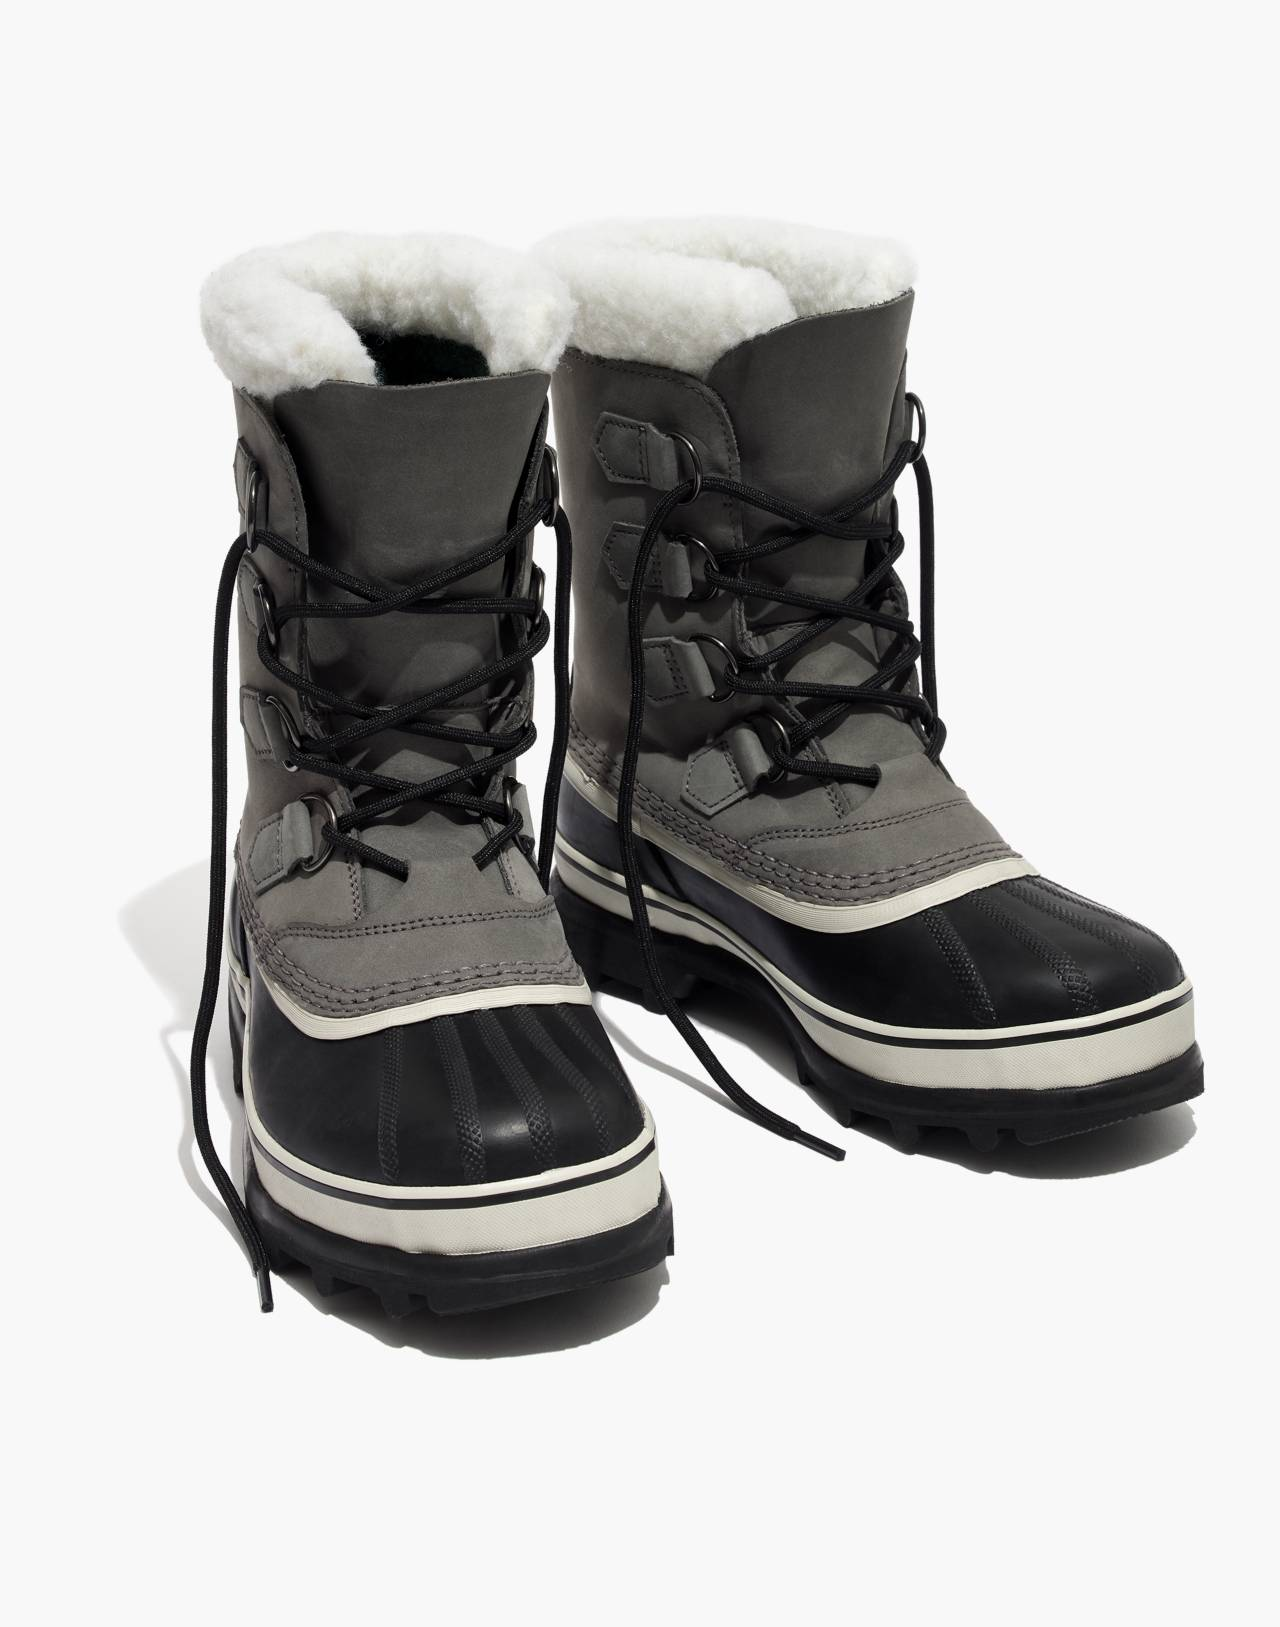 Sorel® Caribou™ Boots in shale stone image 1